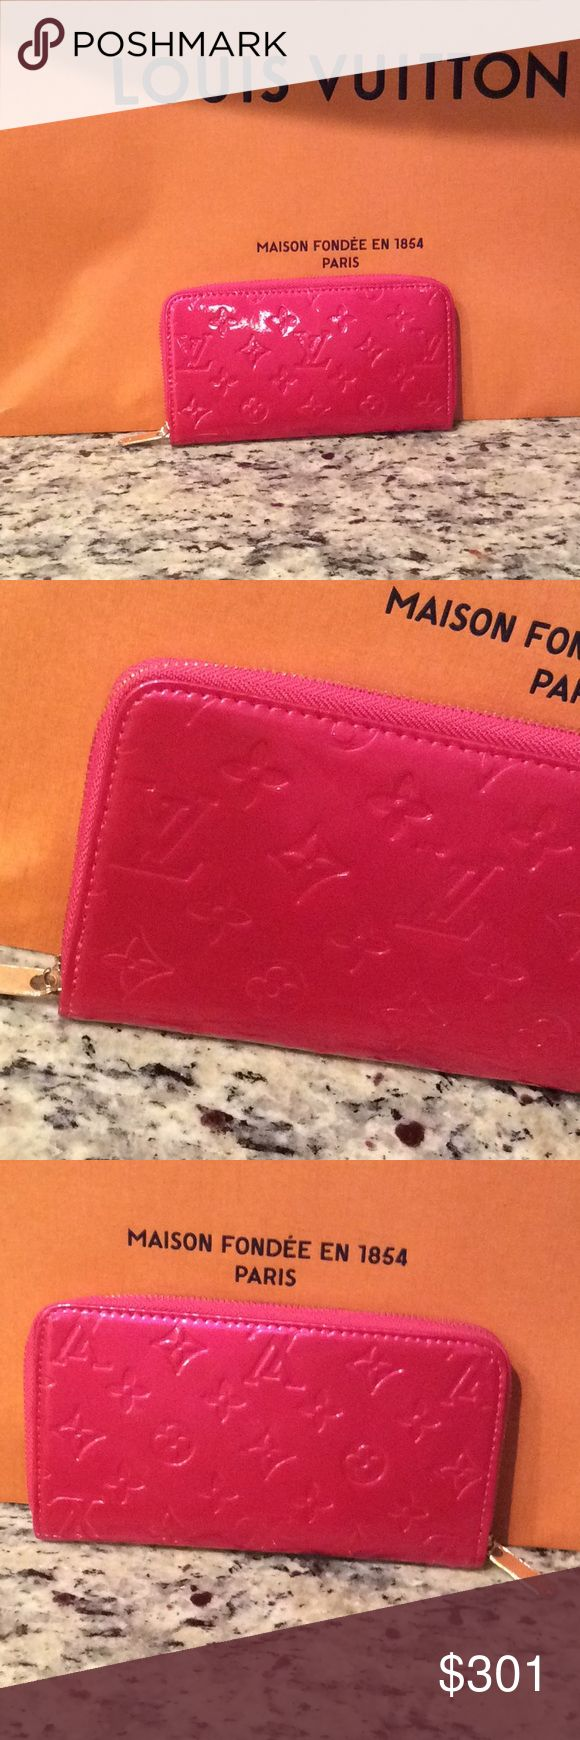 Louis Vuitton full zip wallet hand purse hot pink Just make an offer All reasonable offers will be considered   This is a brand new Louis Vuitton Metallic hot pink full zip wallet with tons of card holding slots and a zipper inside for coins and cash this is a really high quality INSPIRED or NOT AUTH piece i think bc i can't find a date stamp in it so I will sell this piece at a fraction of the cost of a real. The shopping bag in the background is not sold with this purse Louis Vuitton Bags